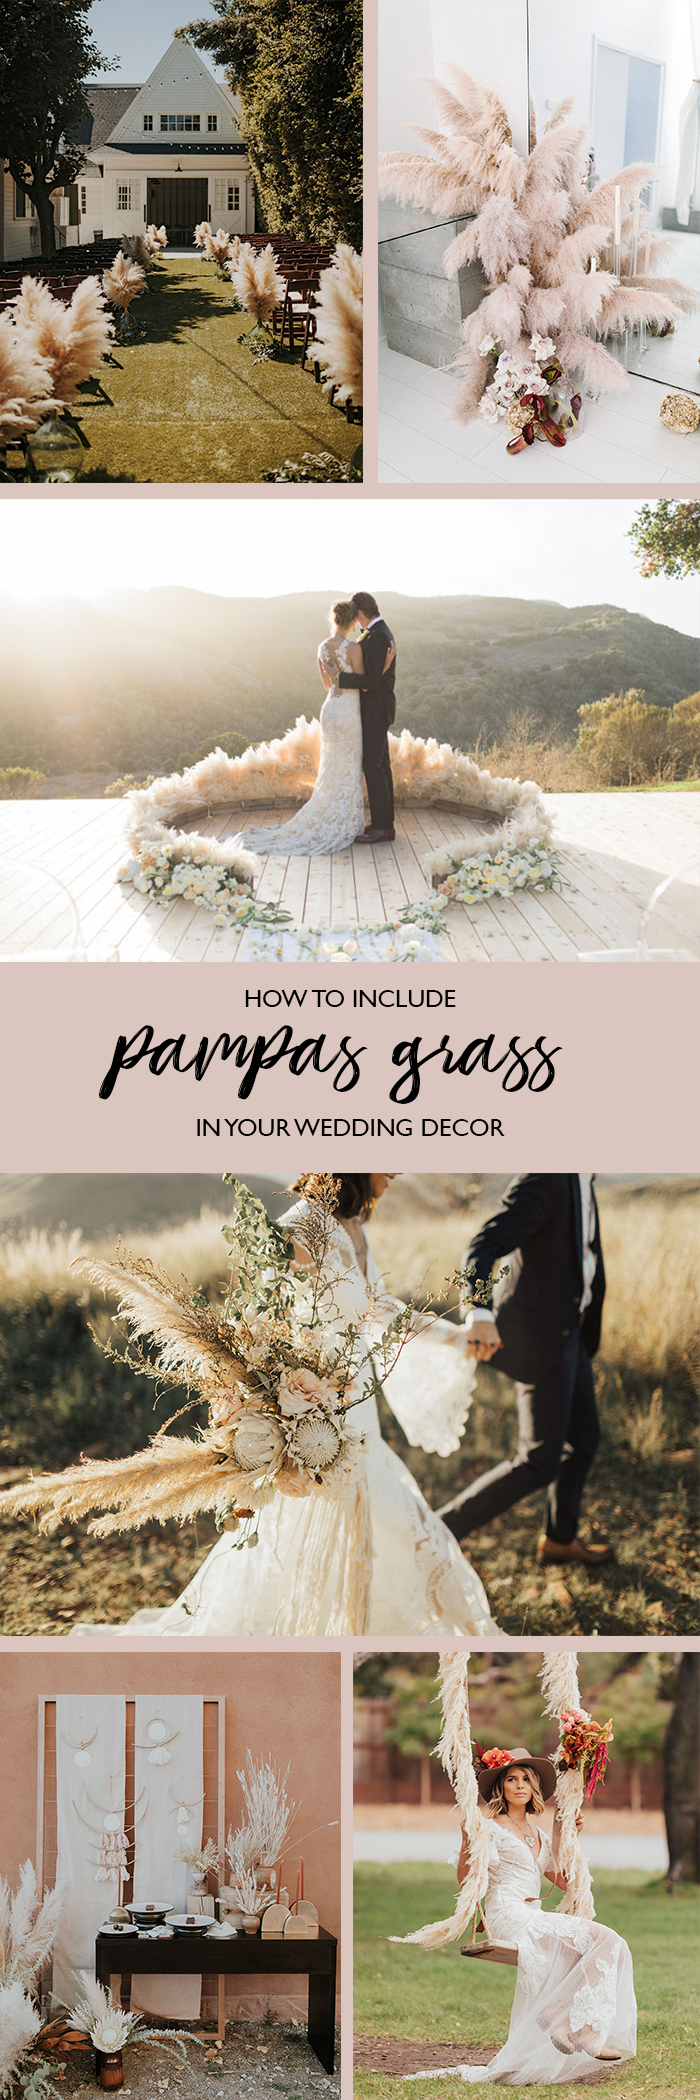 pampas grass in wedding decor